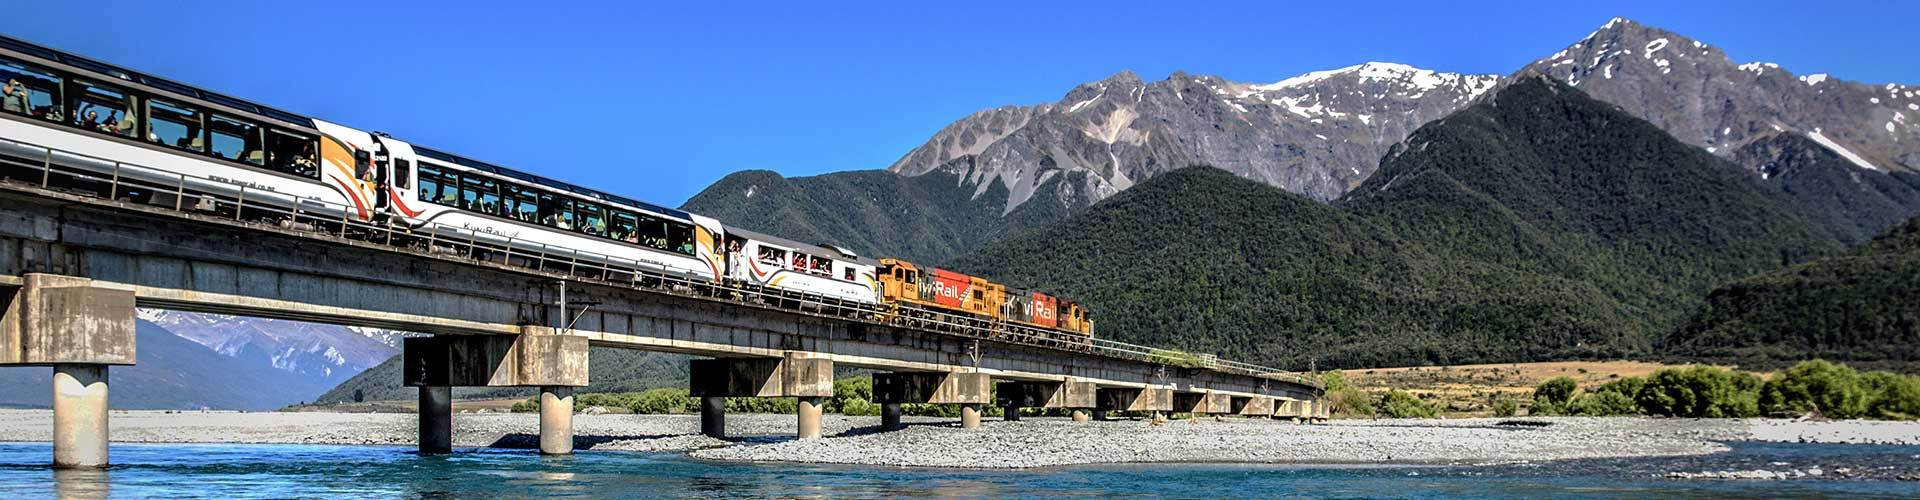 TranzAlpine tours New Zealand